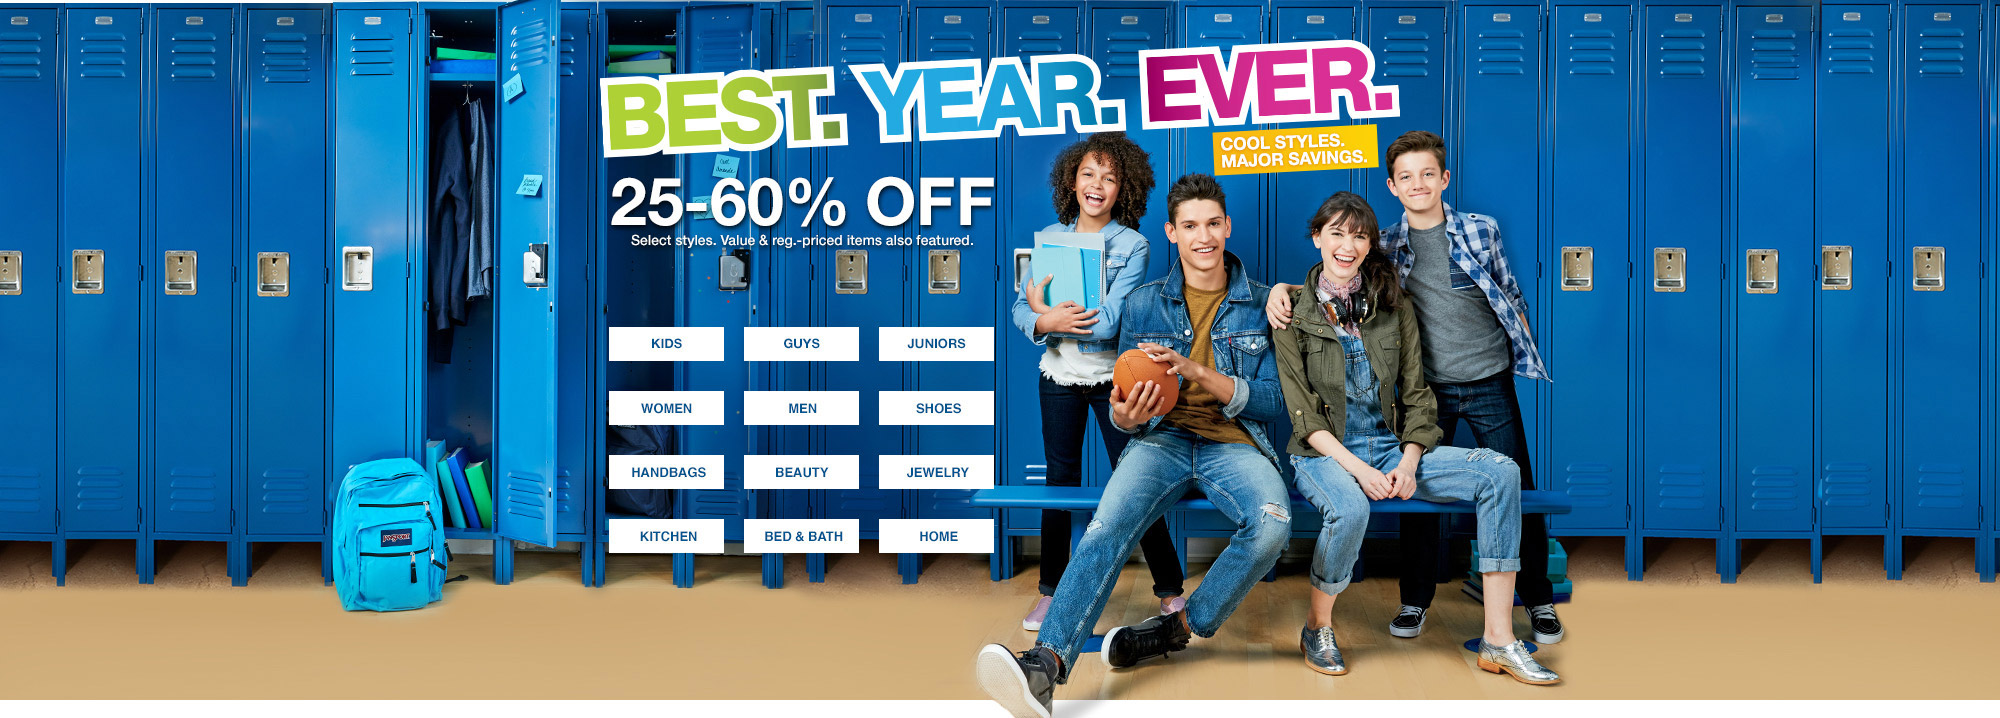 best year ever. cool styles. major savings. 25 percent to 60 percent off. select styles. value and regular priced items also featured.